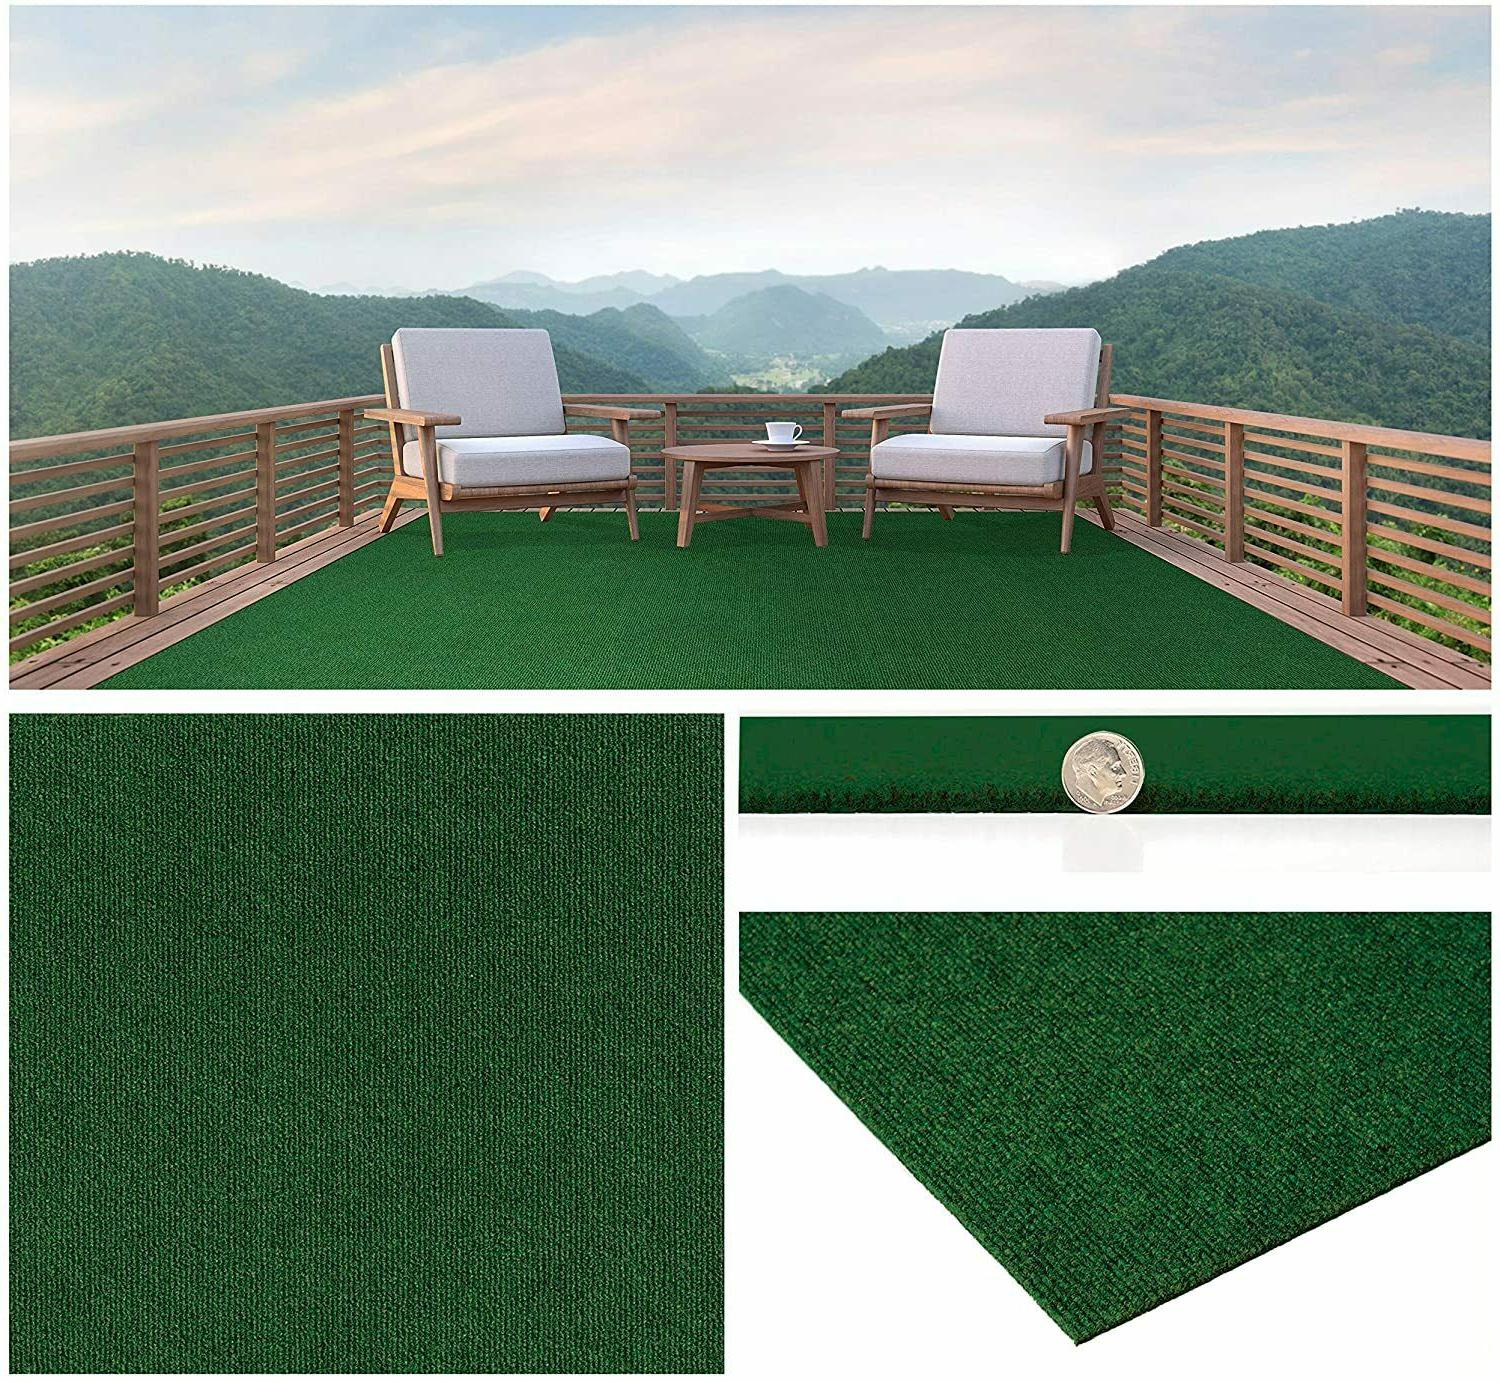 green durable outdoor area rugs constructed